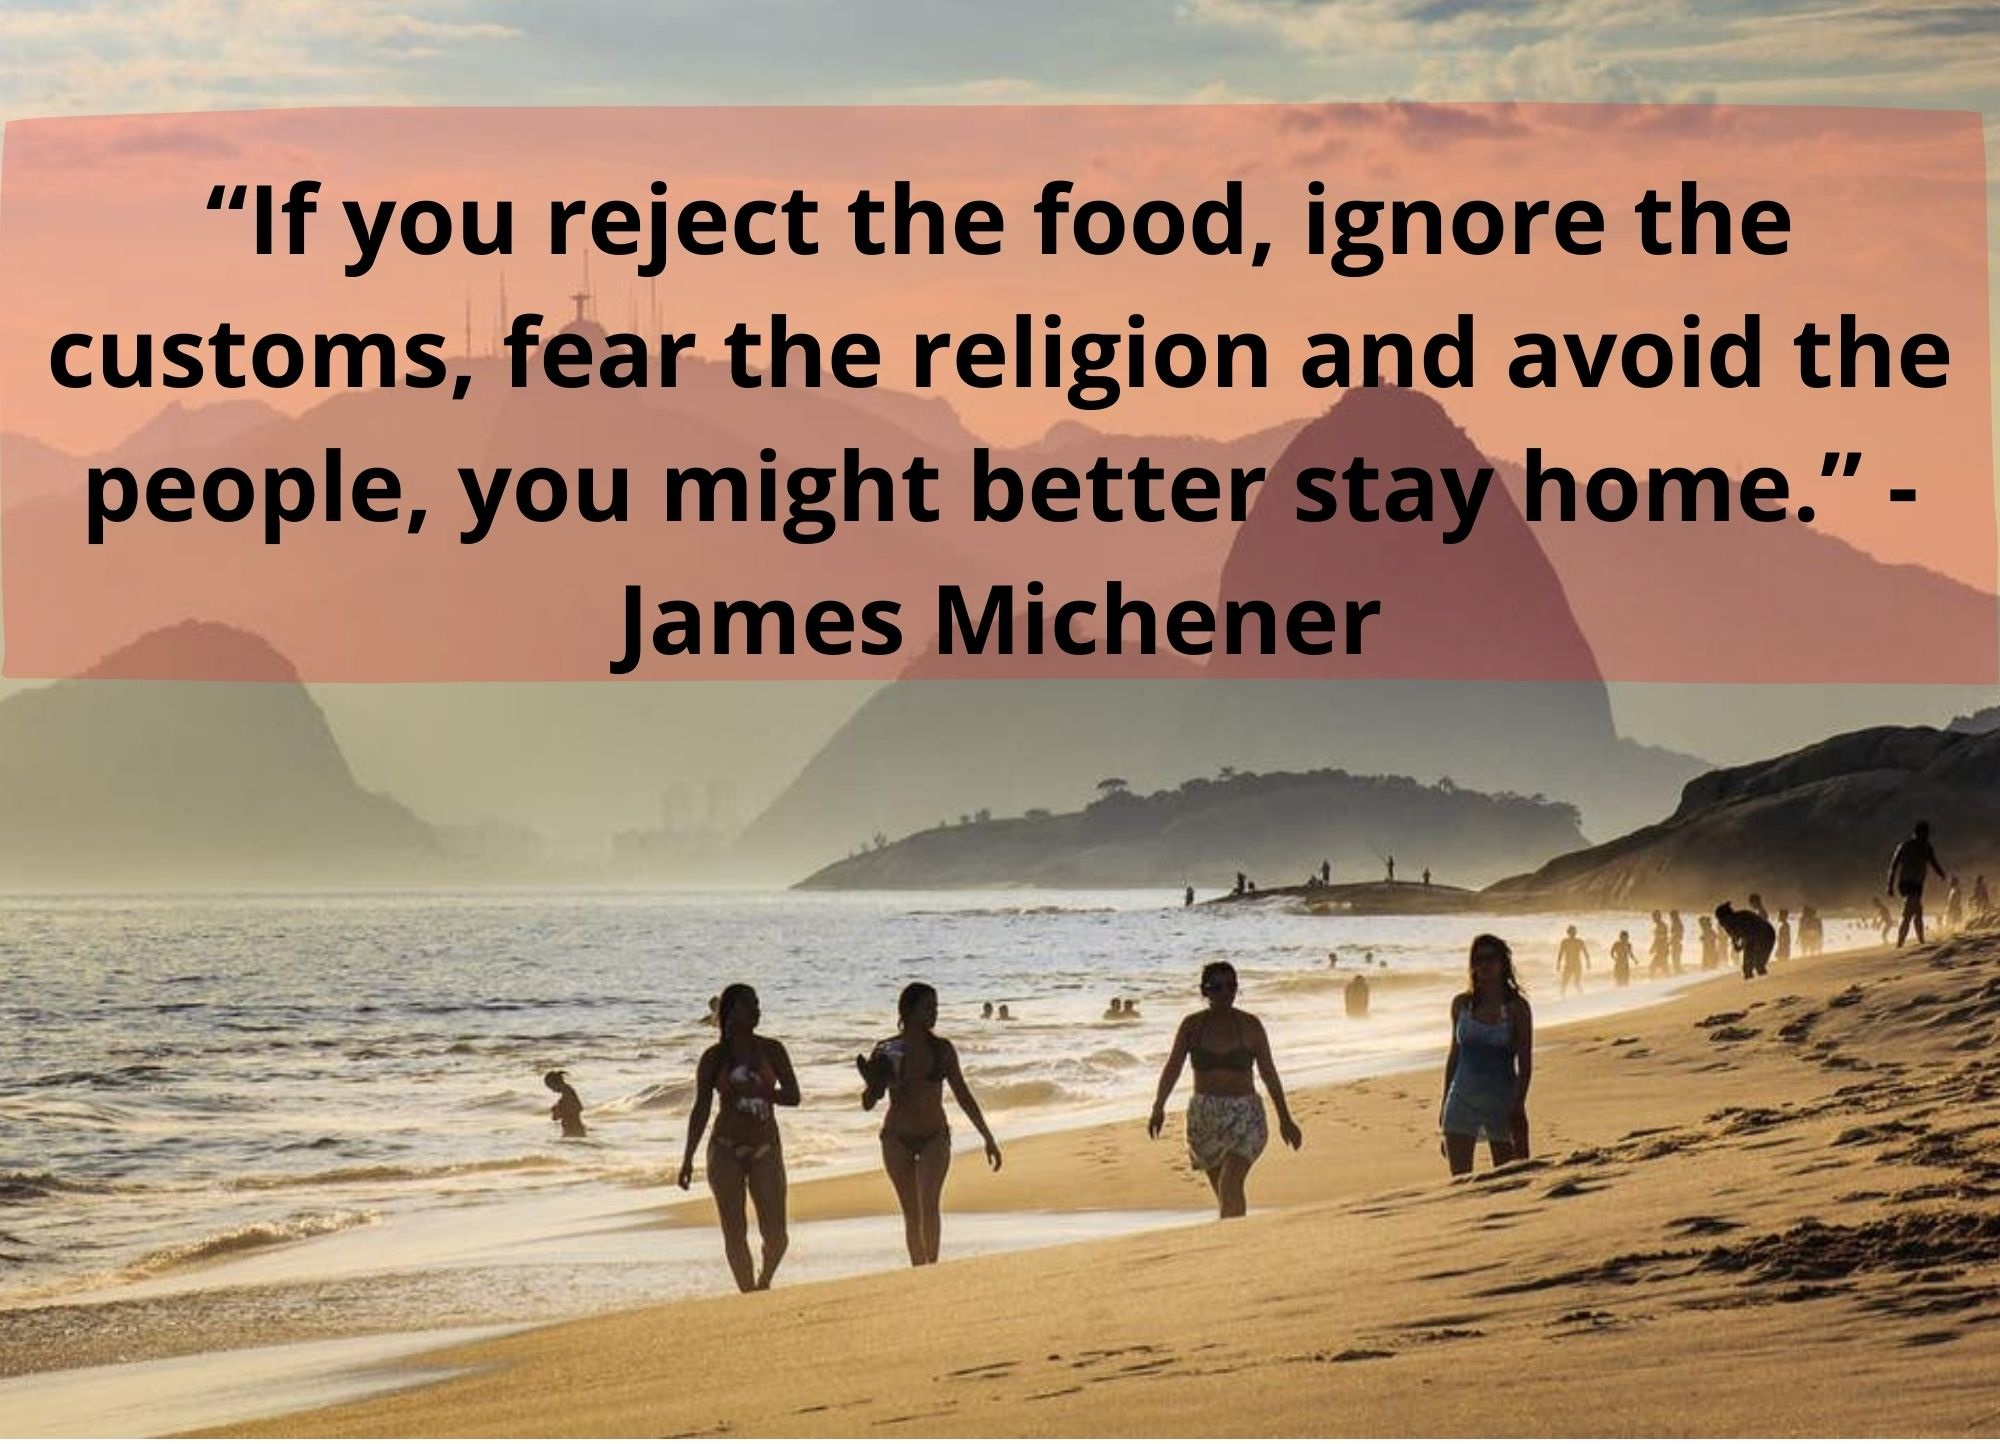 """""""If you reject the food, ignore the customs, fear the religion and avoid the people, you might better stay home."""" -James Michener"""